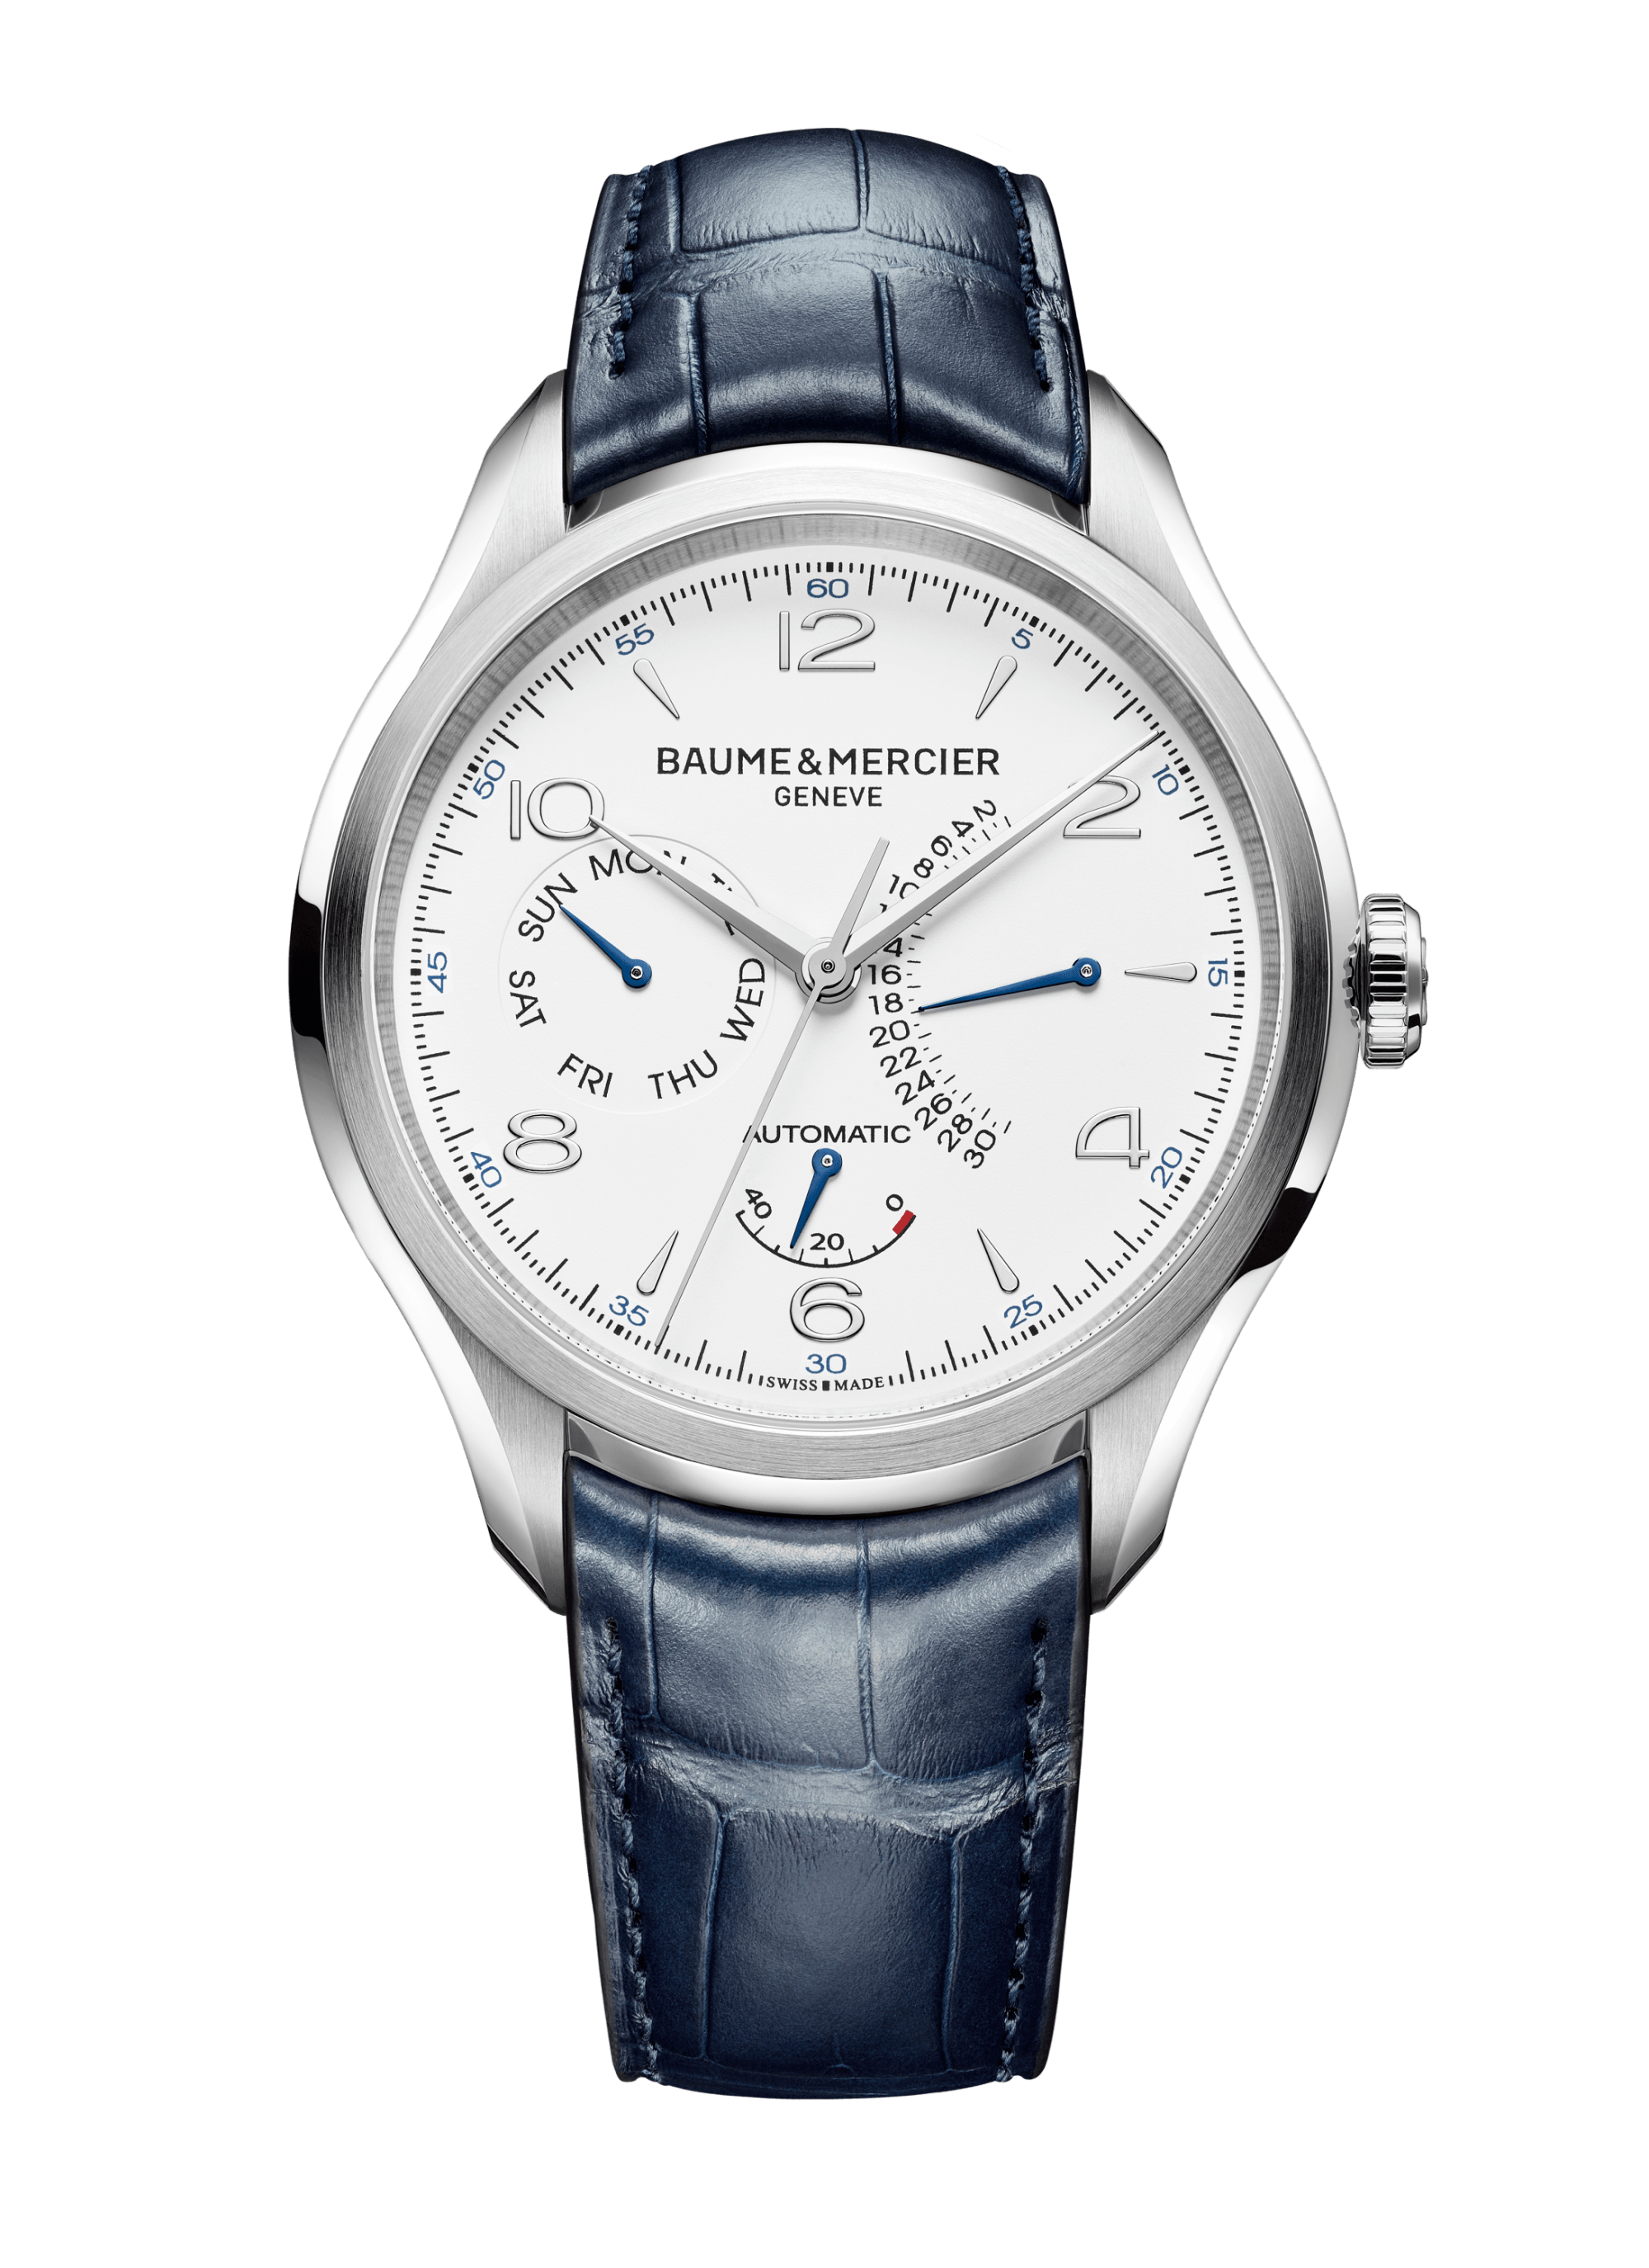 名士表(Baume & Mercier)Clifton 10449 男士腕表 null null